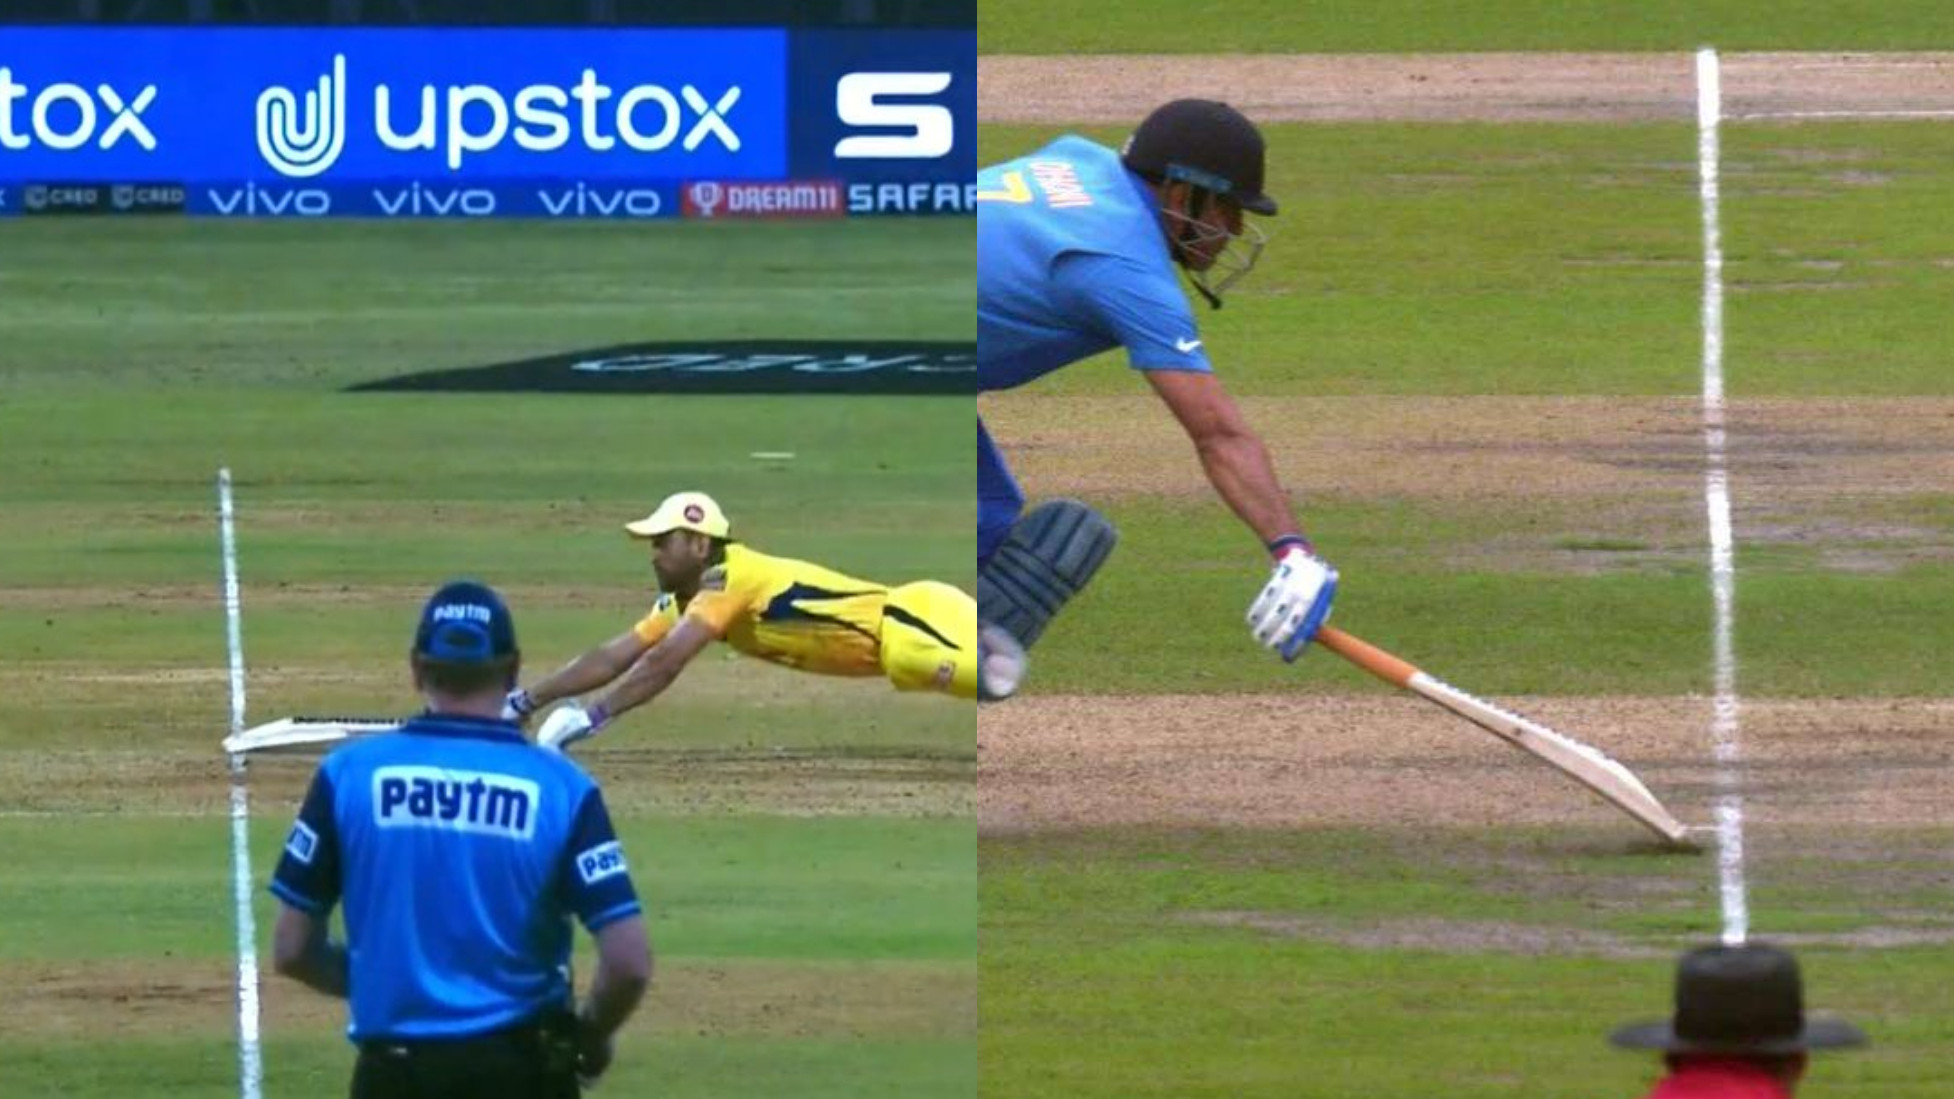 IPL 2021: MS Dhoni dives to save himself against RR; Twitterverse gets 2019 World Cup nostalgia